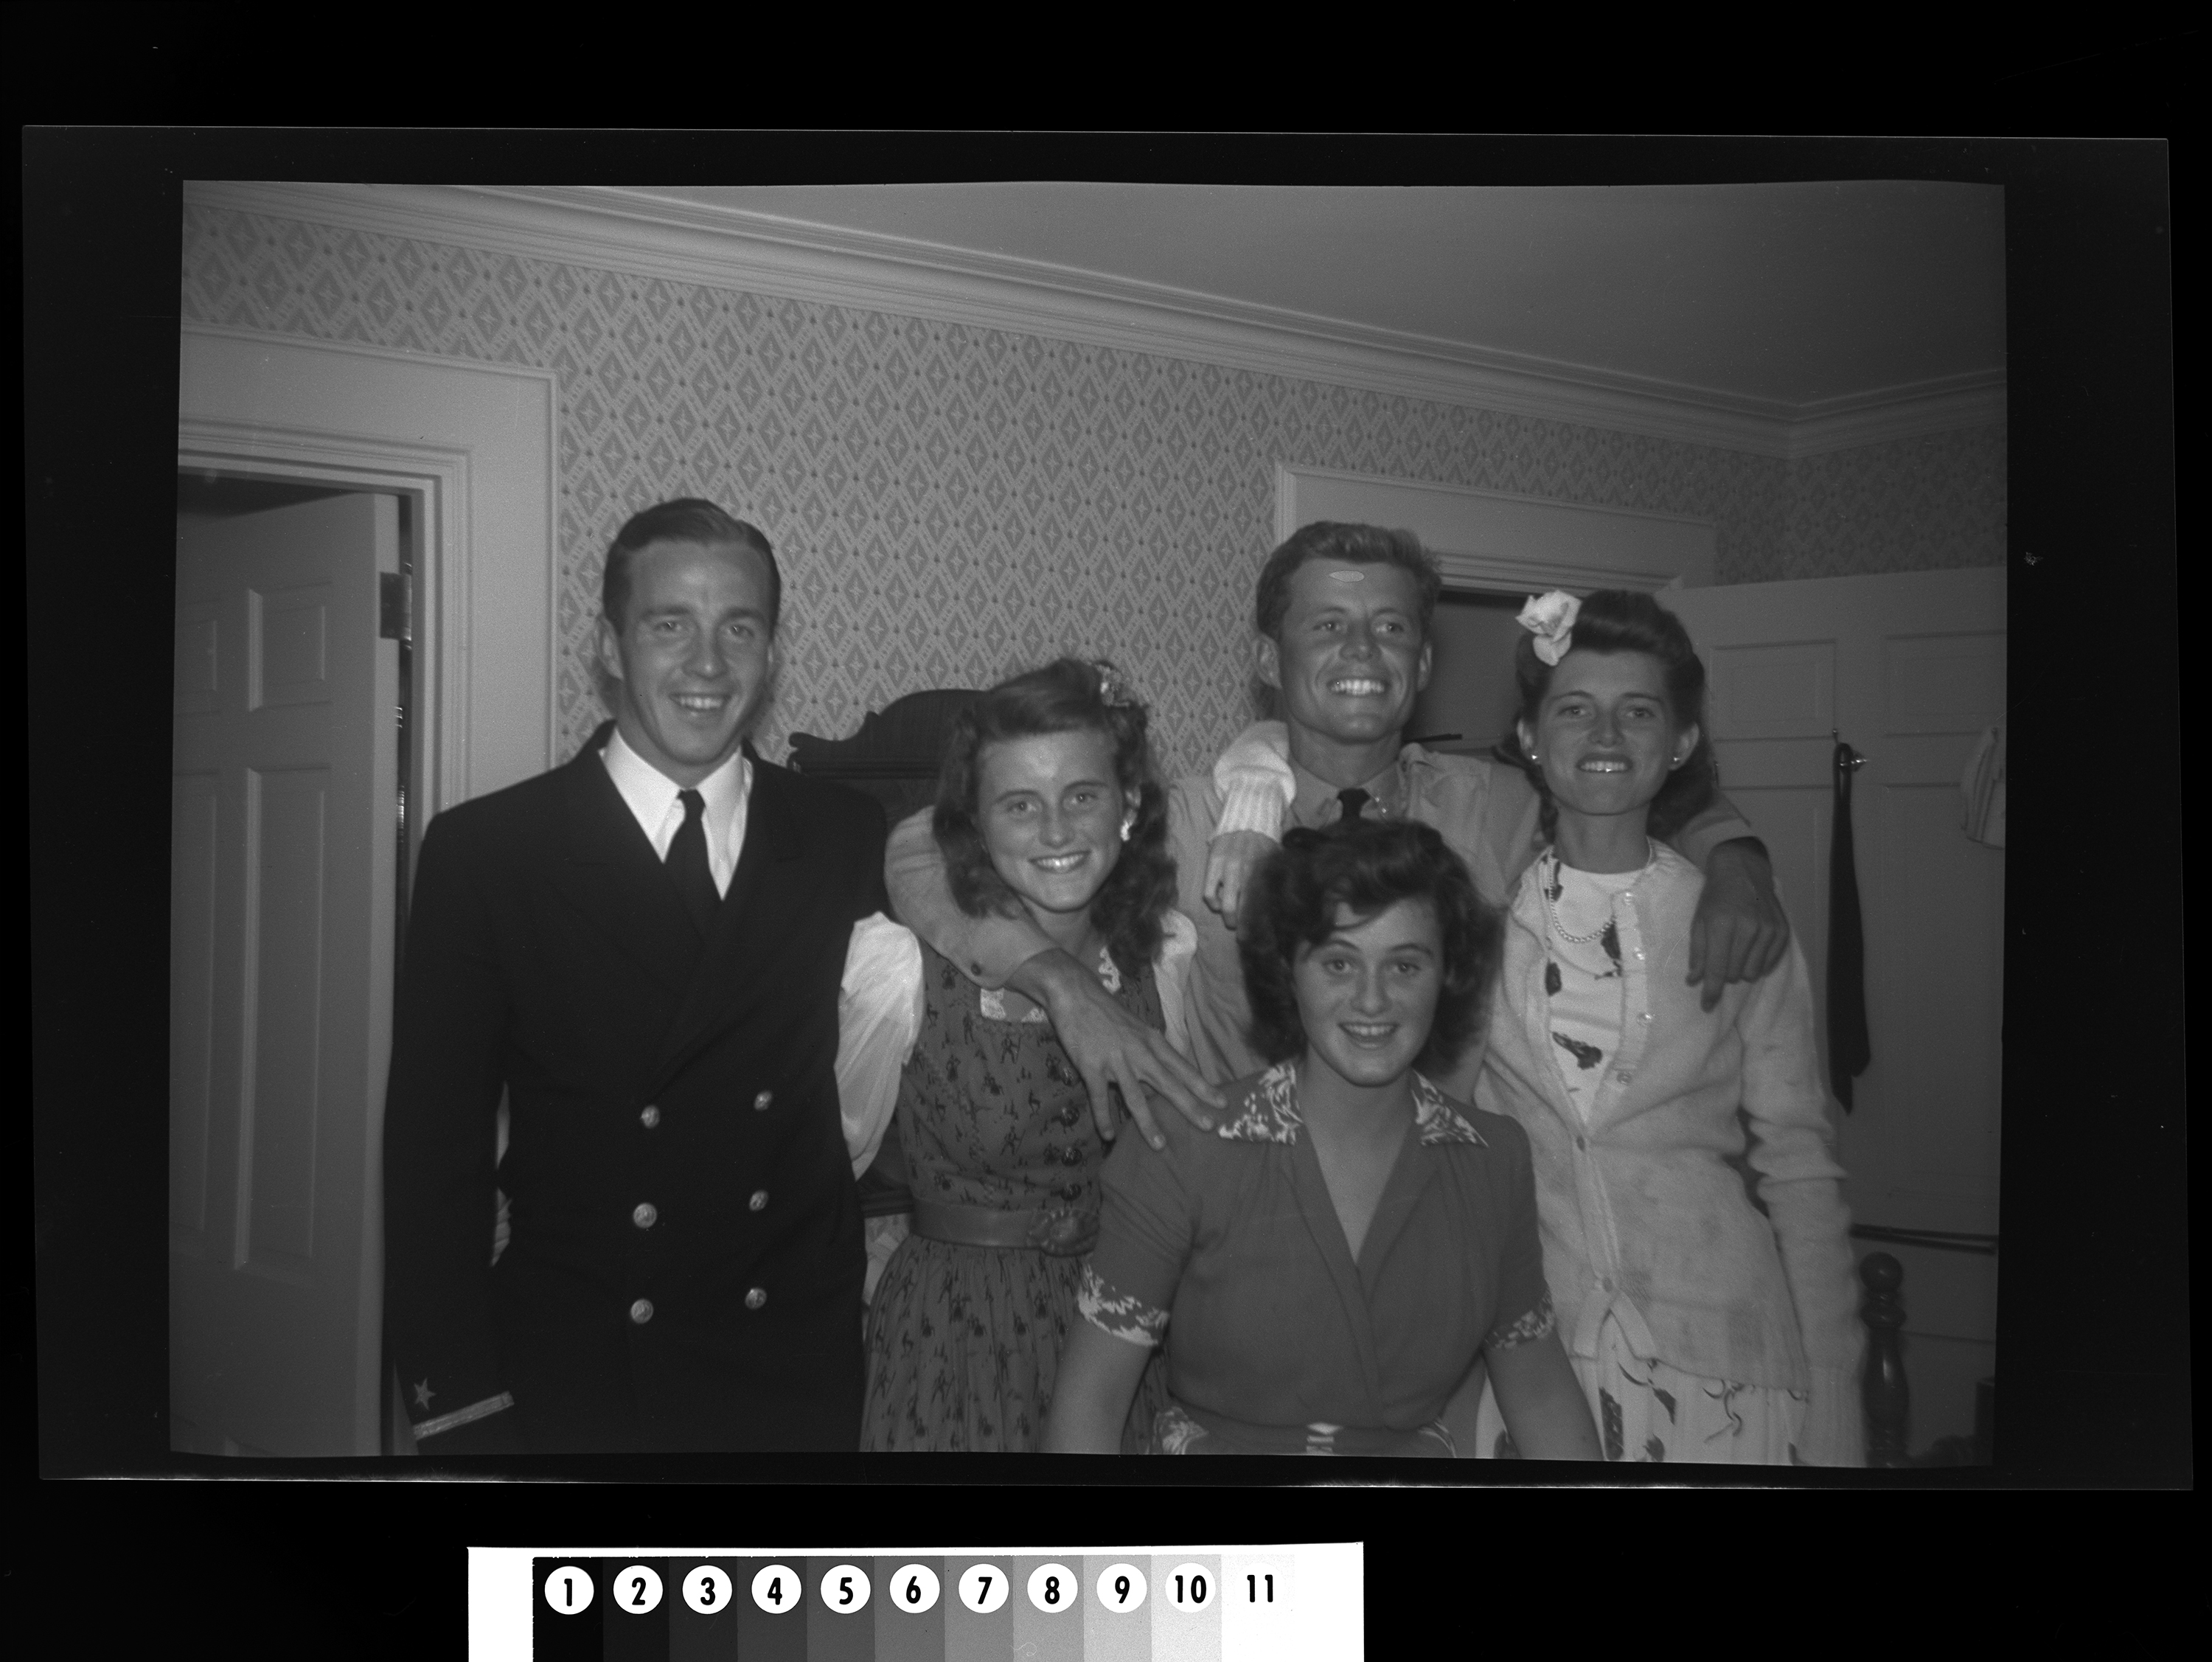 KFC98N. Left to right: Torbert Macdonald, Kathleen Kennedy, John F. Kennedy, Eunice Kennedy, and Jean Kennedy. Hyannis Port, Massachusetts, 1942 1 negative (black-and-white; 2 1/4 x 3 1/4 inches; film/plastic: nitrate) © John F. Kennedy Library Foundation